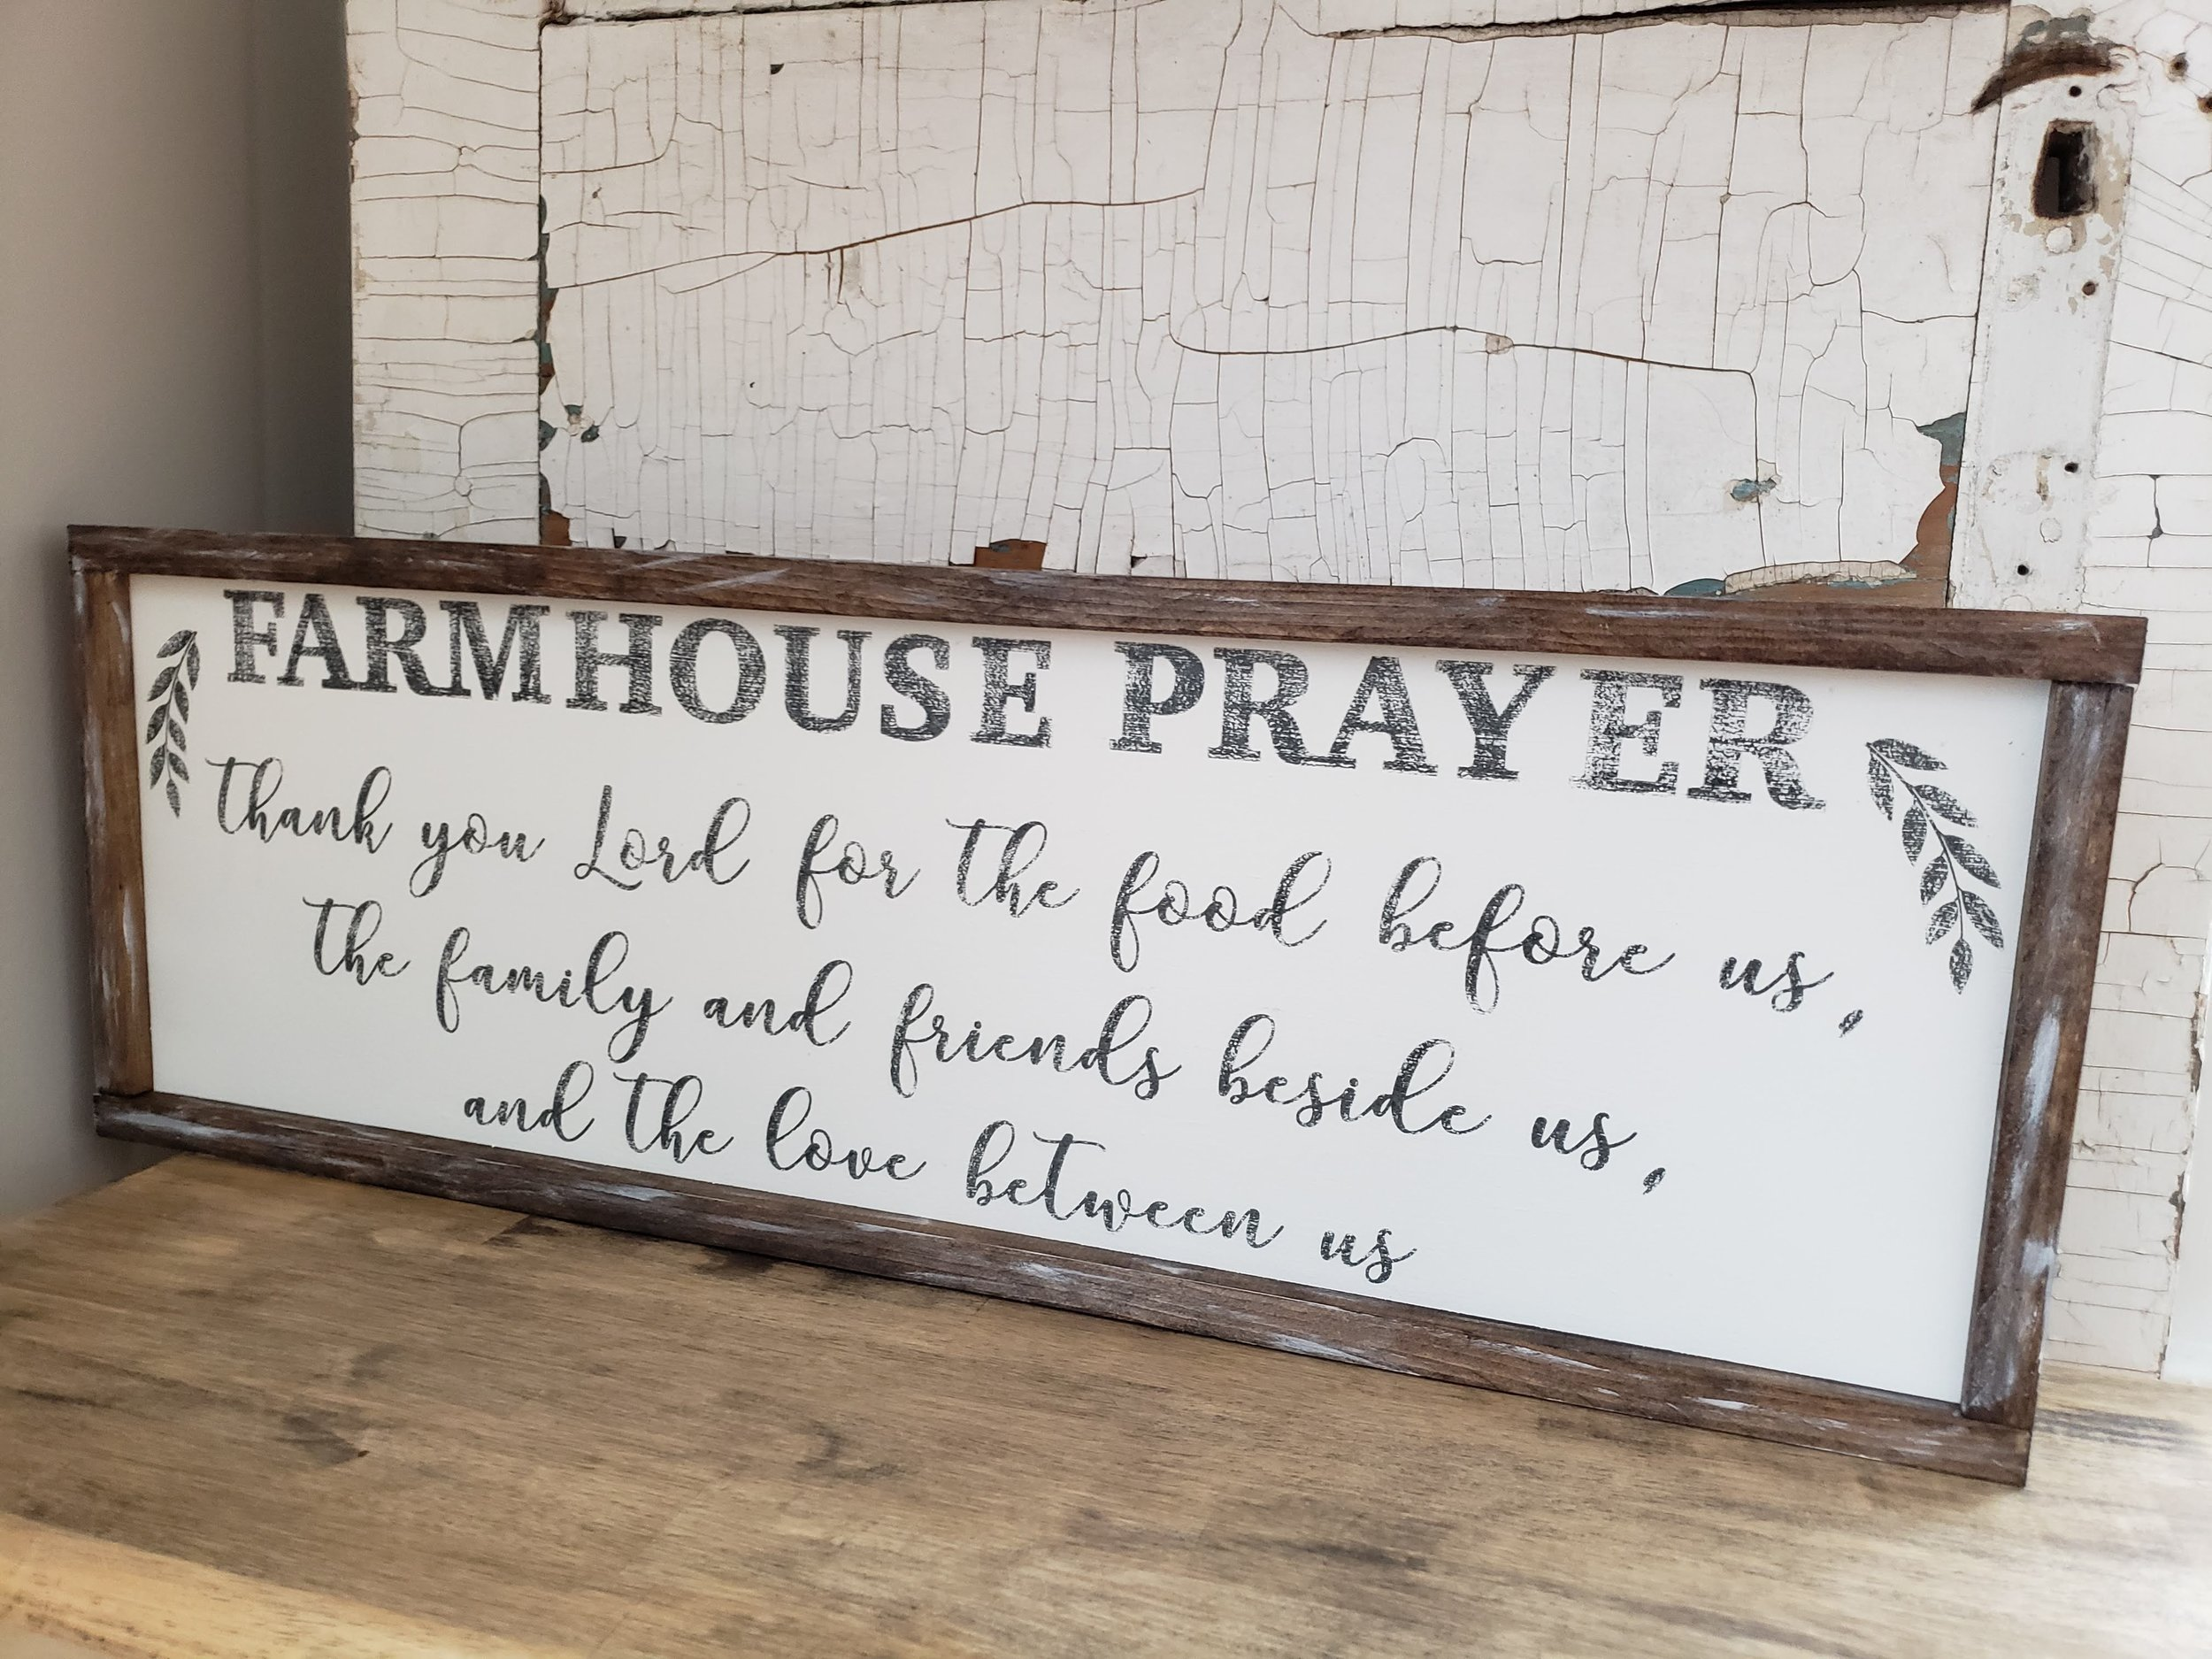 farmhouse prayer.jpg